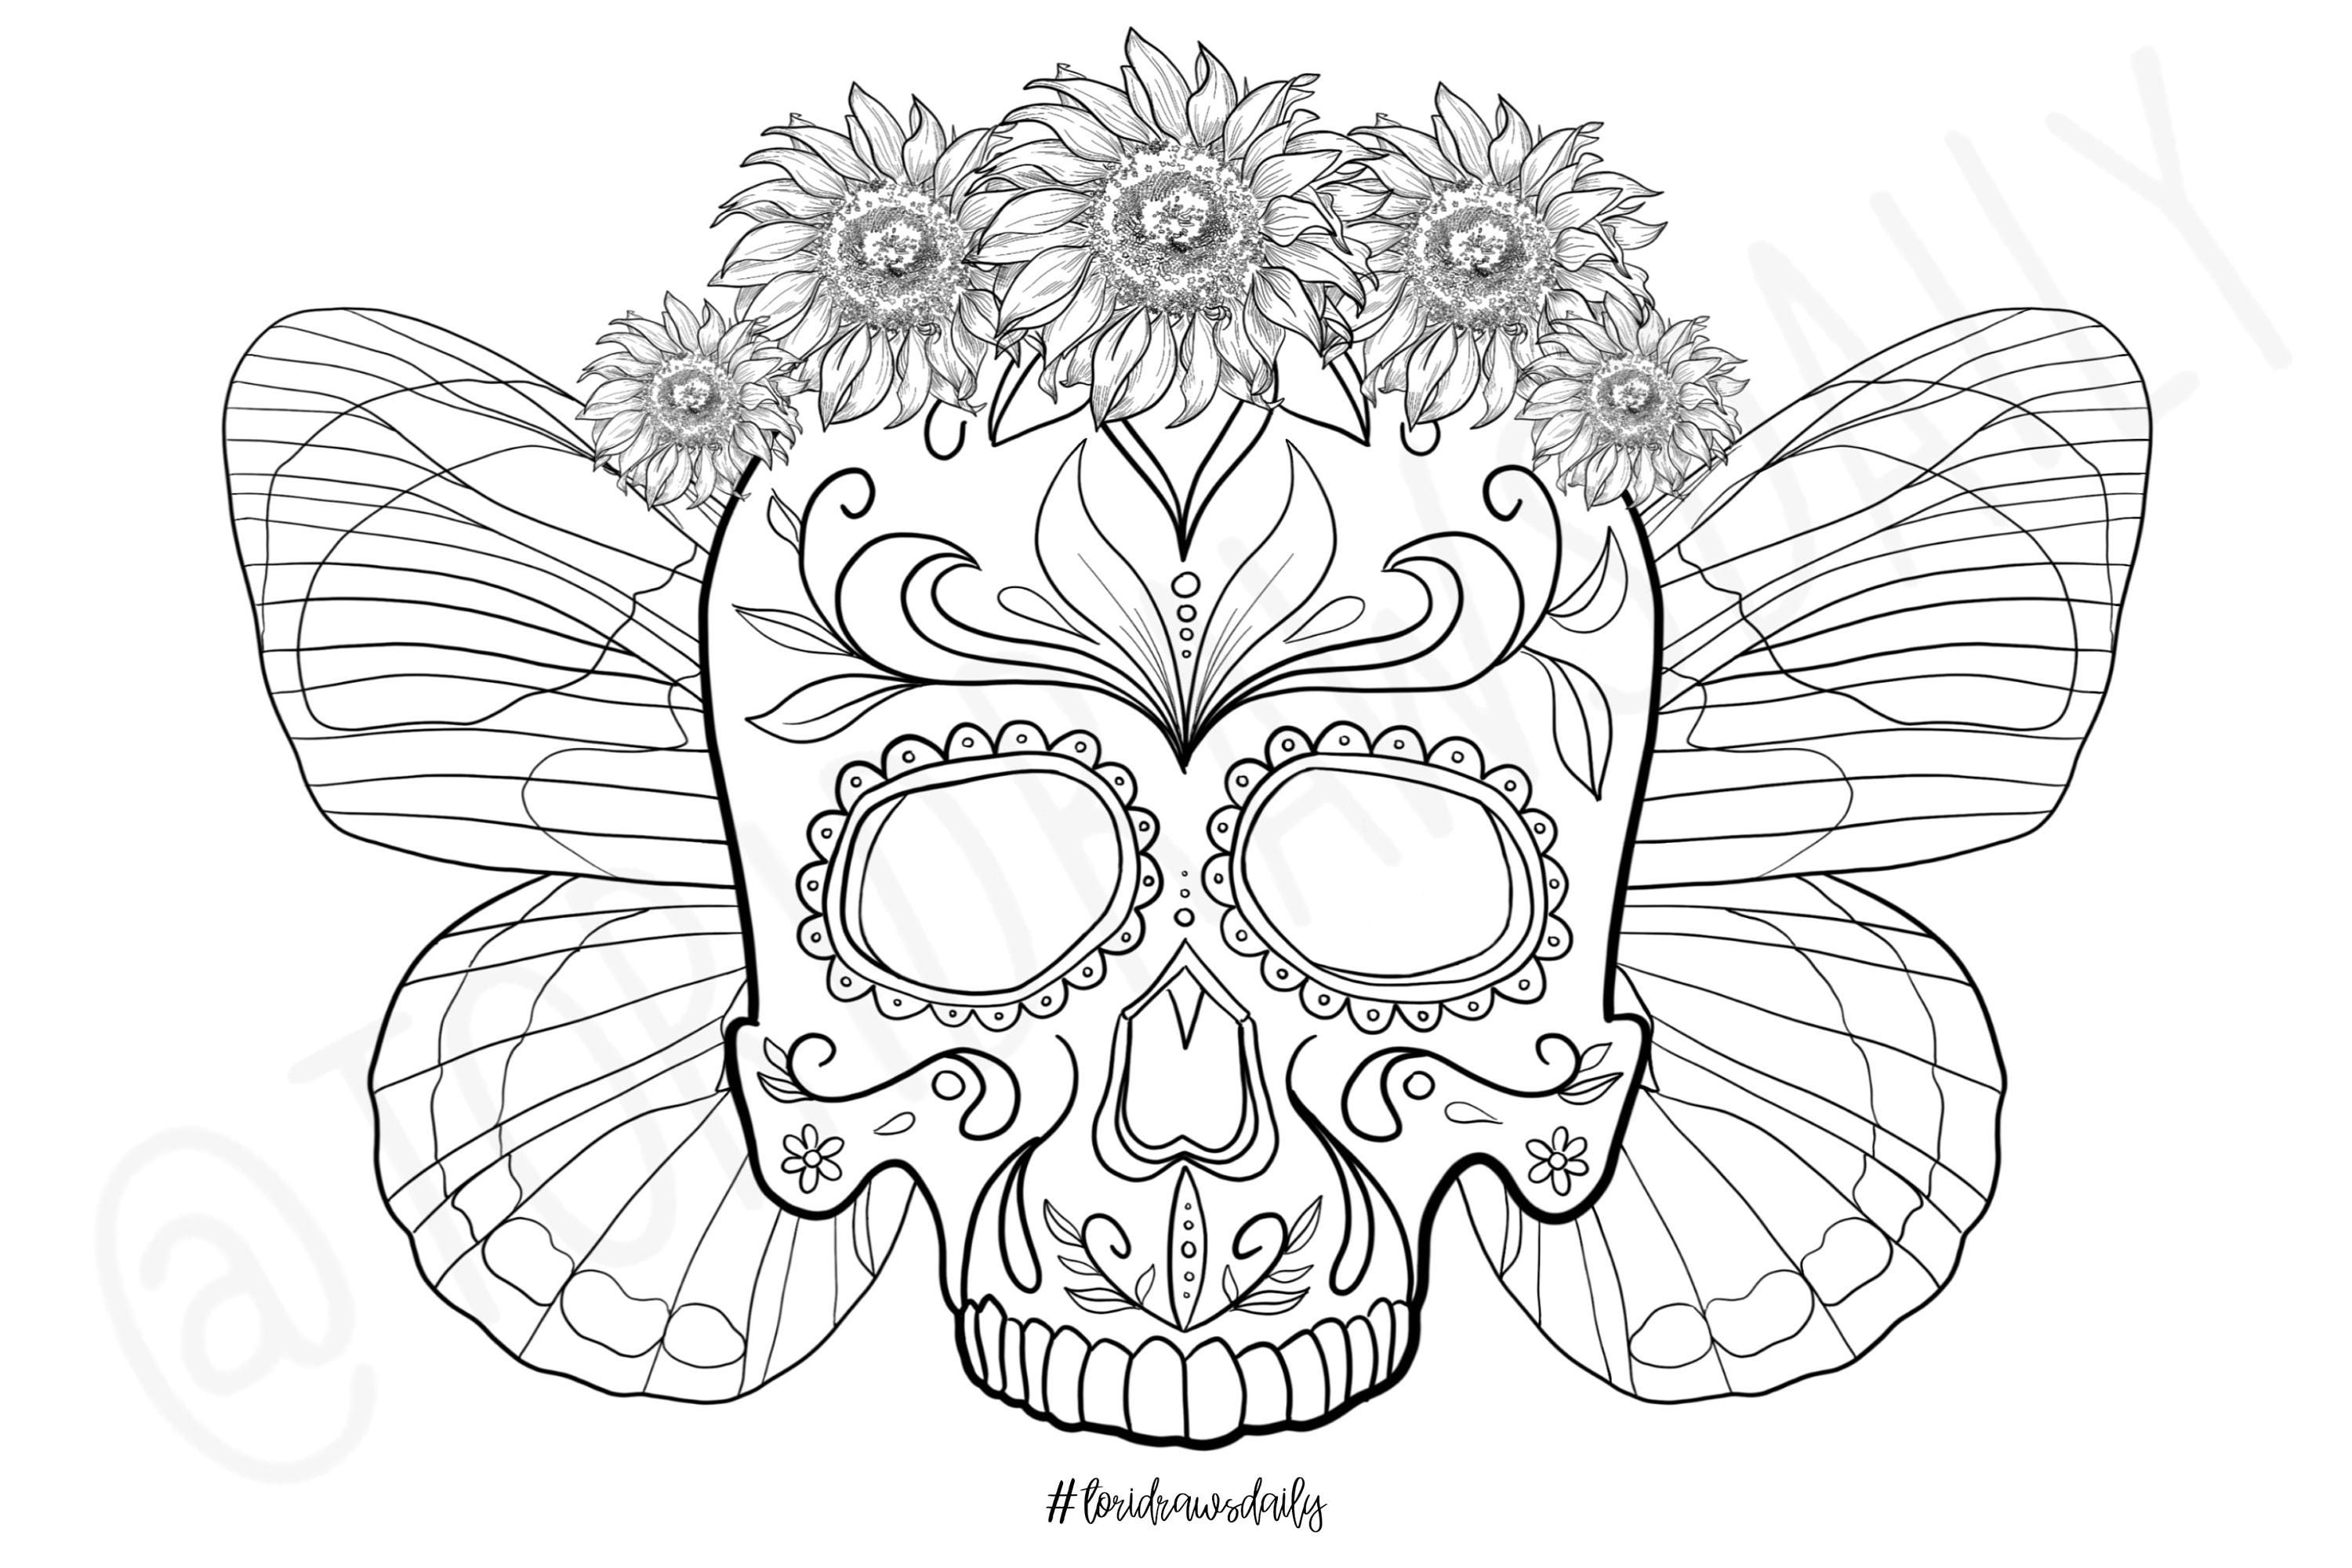 Skull Flower Crown with Butterfly Wings COLORING PAGE | Etsy